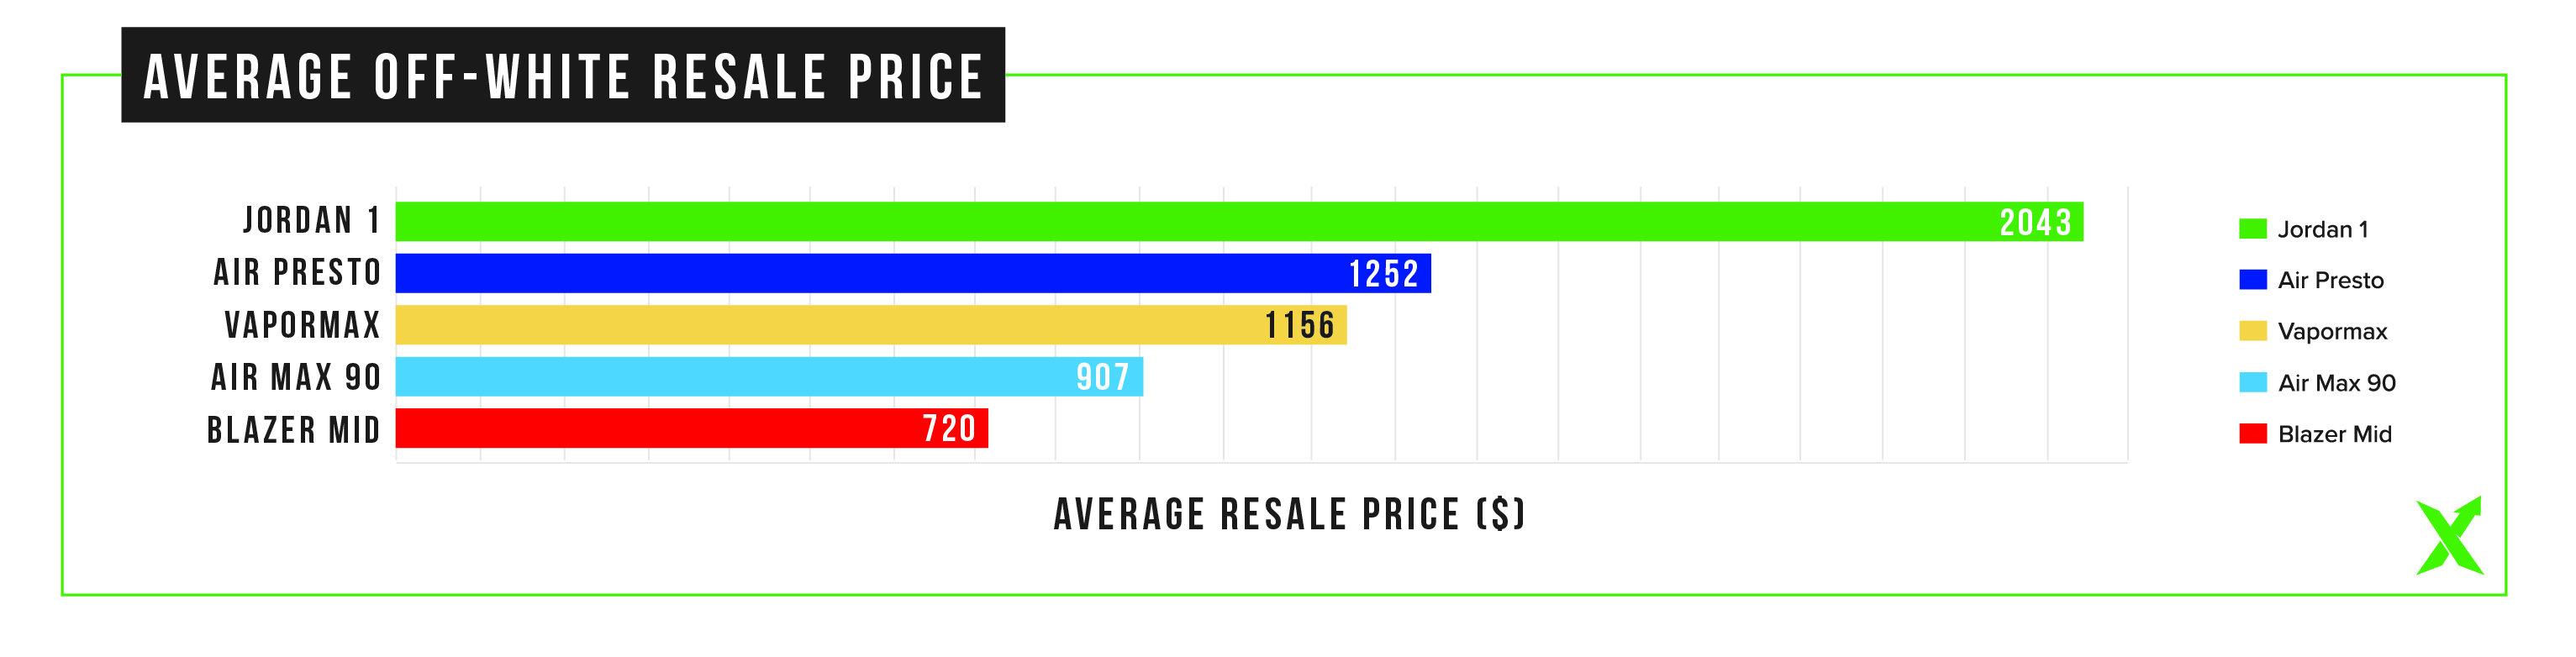 06053b80528 The first chart shows the average Off-White resale prices over the past two  weeks. The Jordan 1 leads the way